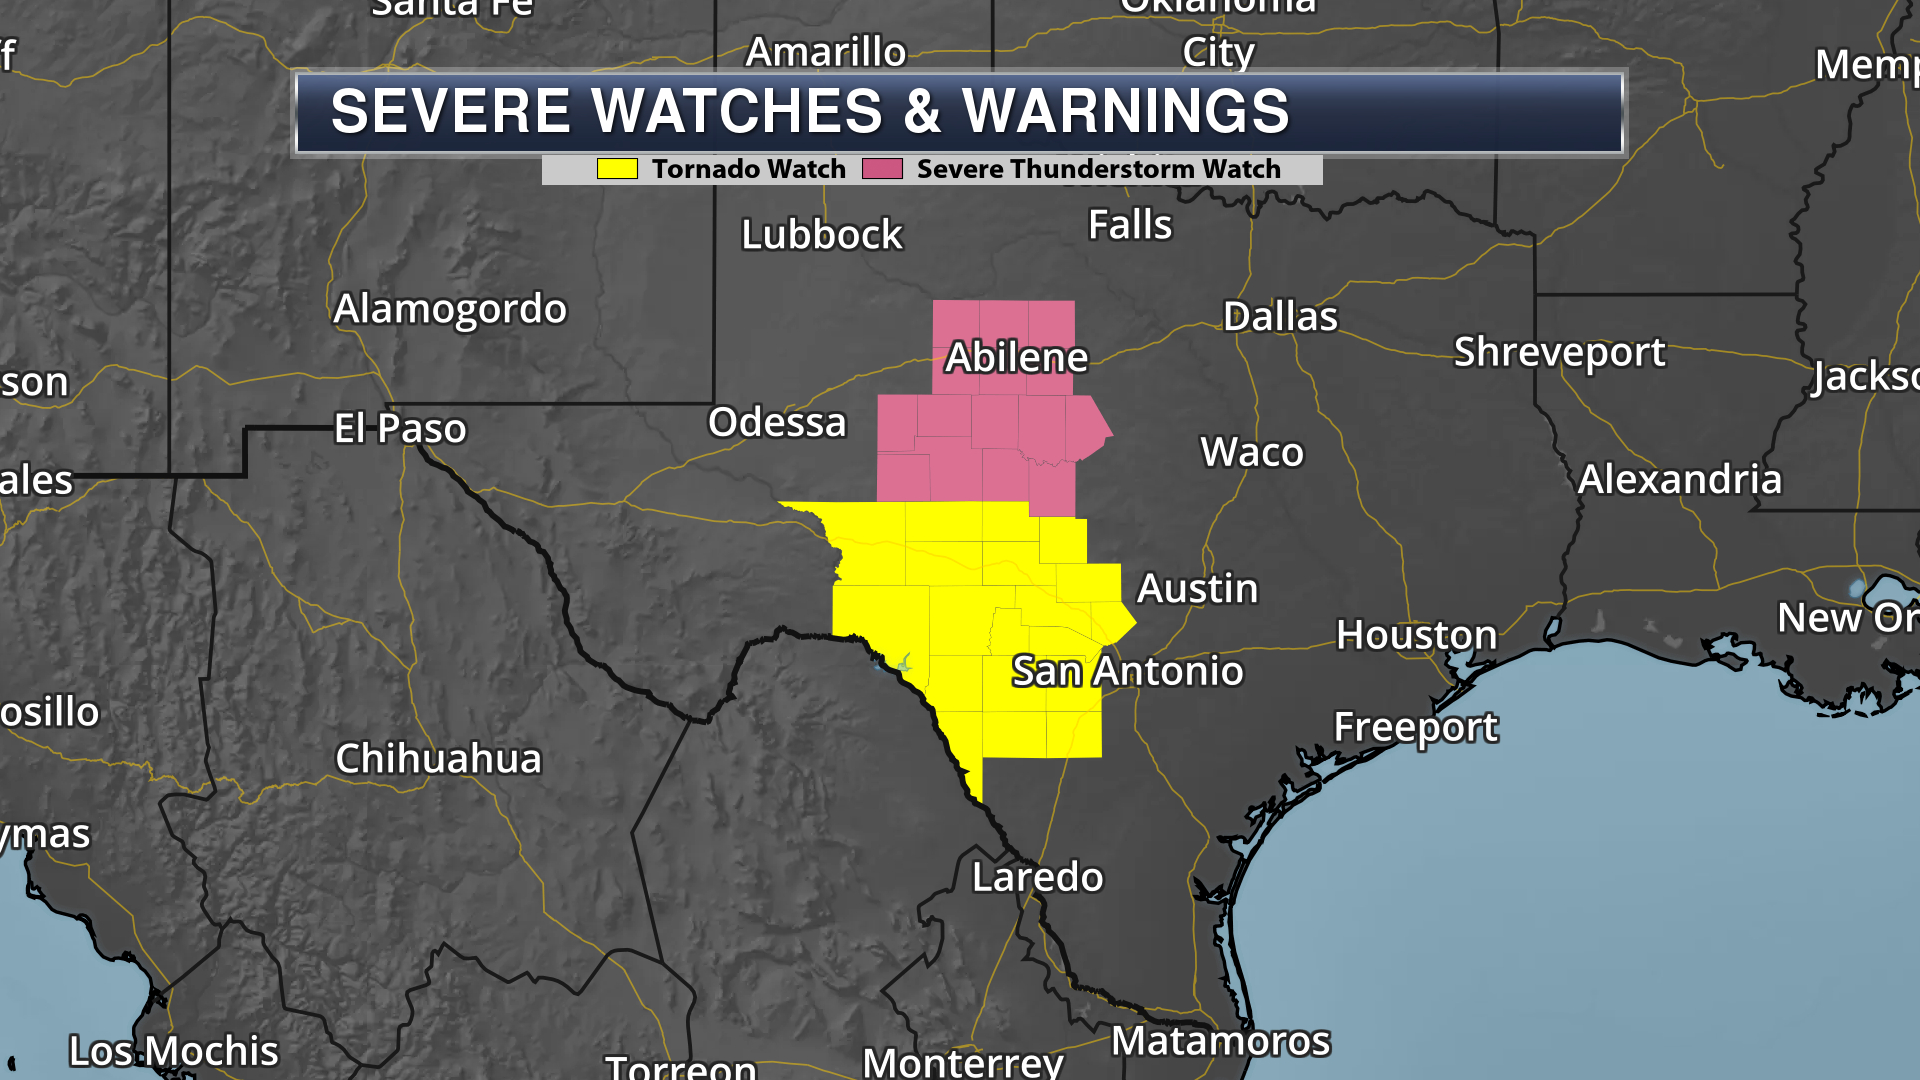 Severe Thunderstorm Watch and Tornado Watch in Texas with legend on dark map